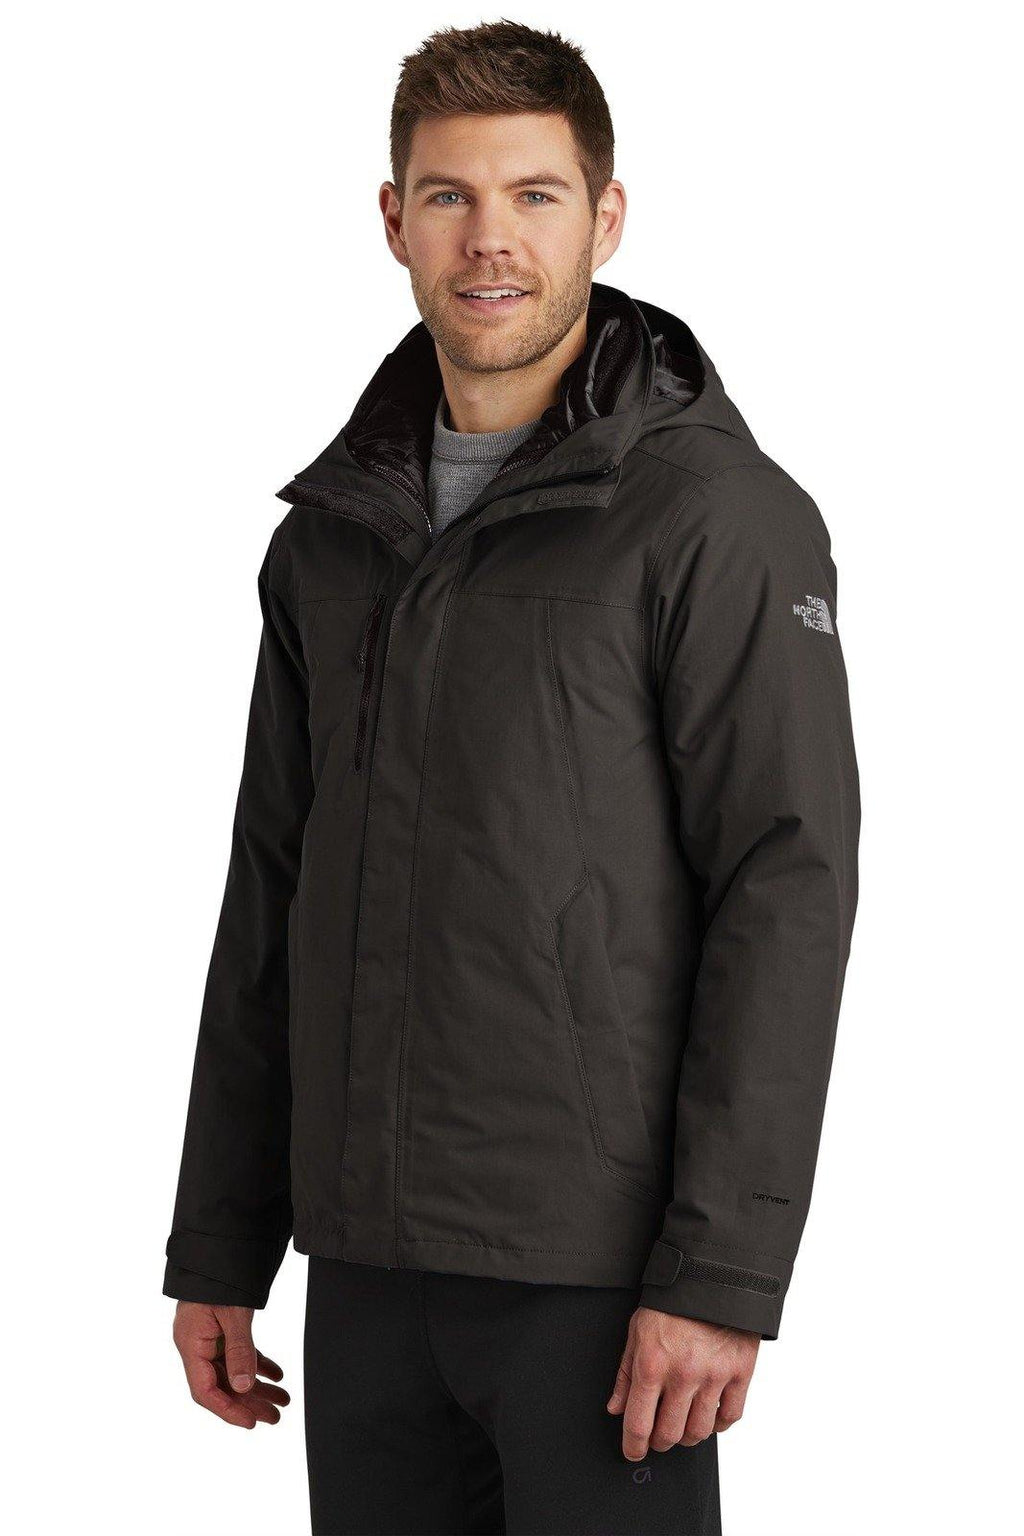 The North Face Traverse Triclimate 3-In-1 Jacket - New Age Promotions